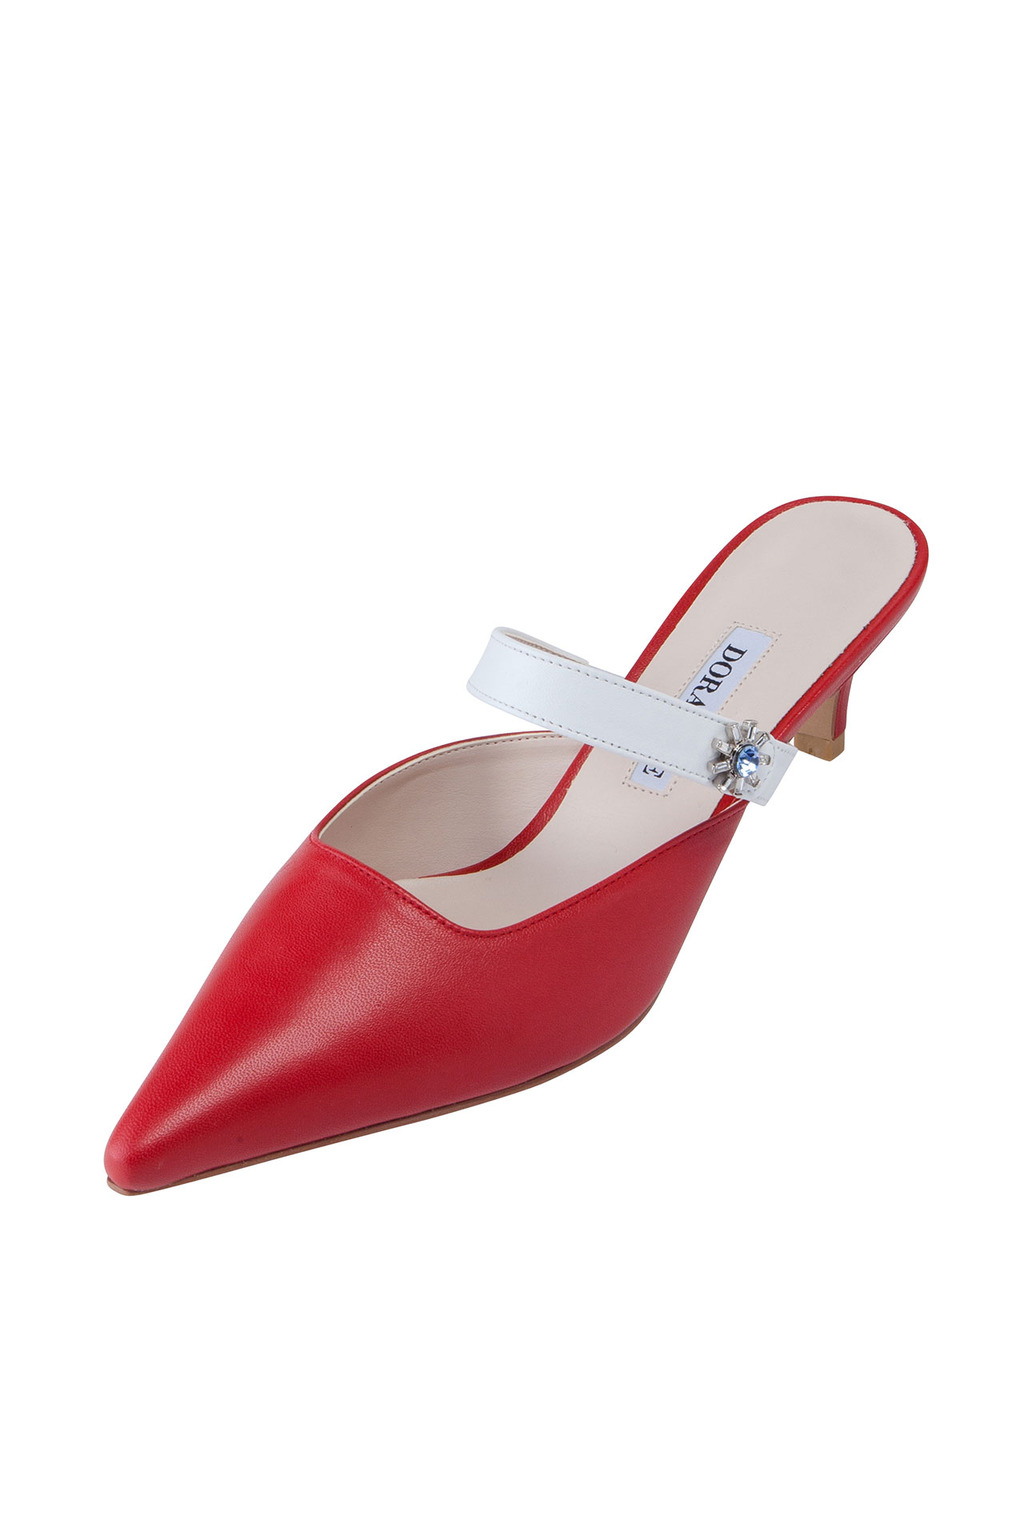 DORATORE Stella Red - Women's Shoes : Republic of Korea